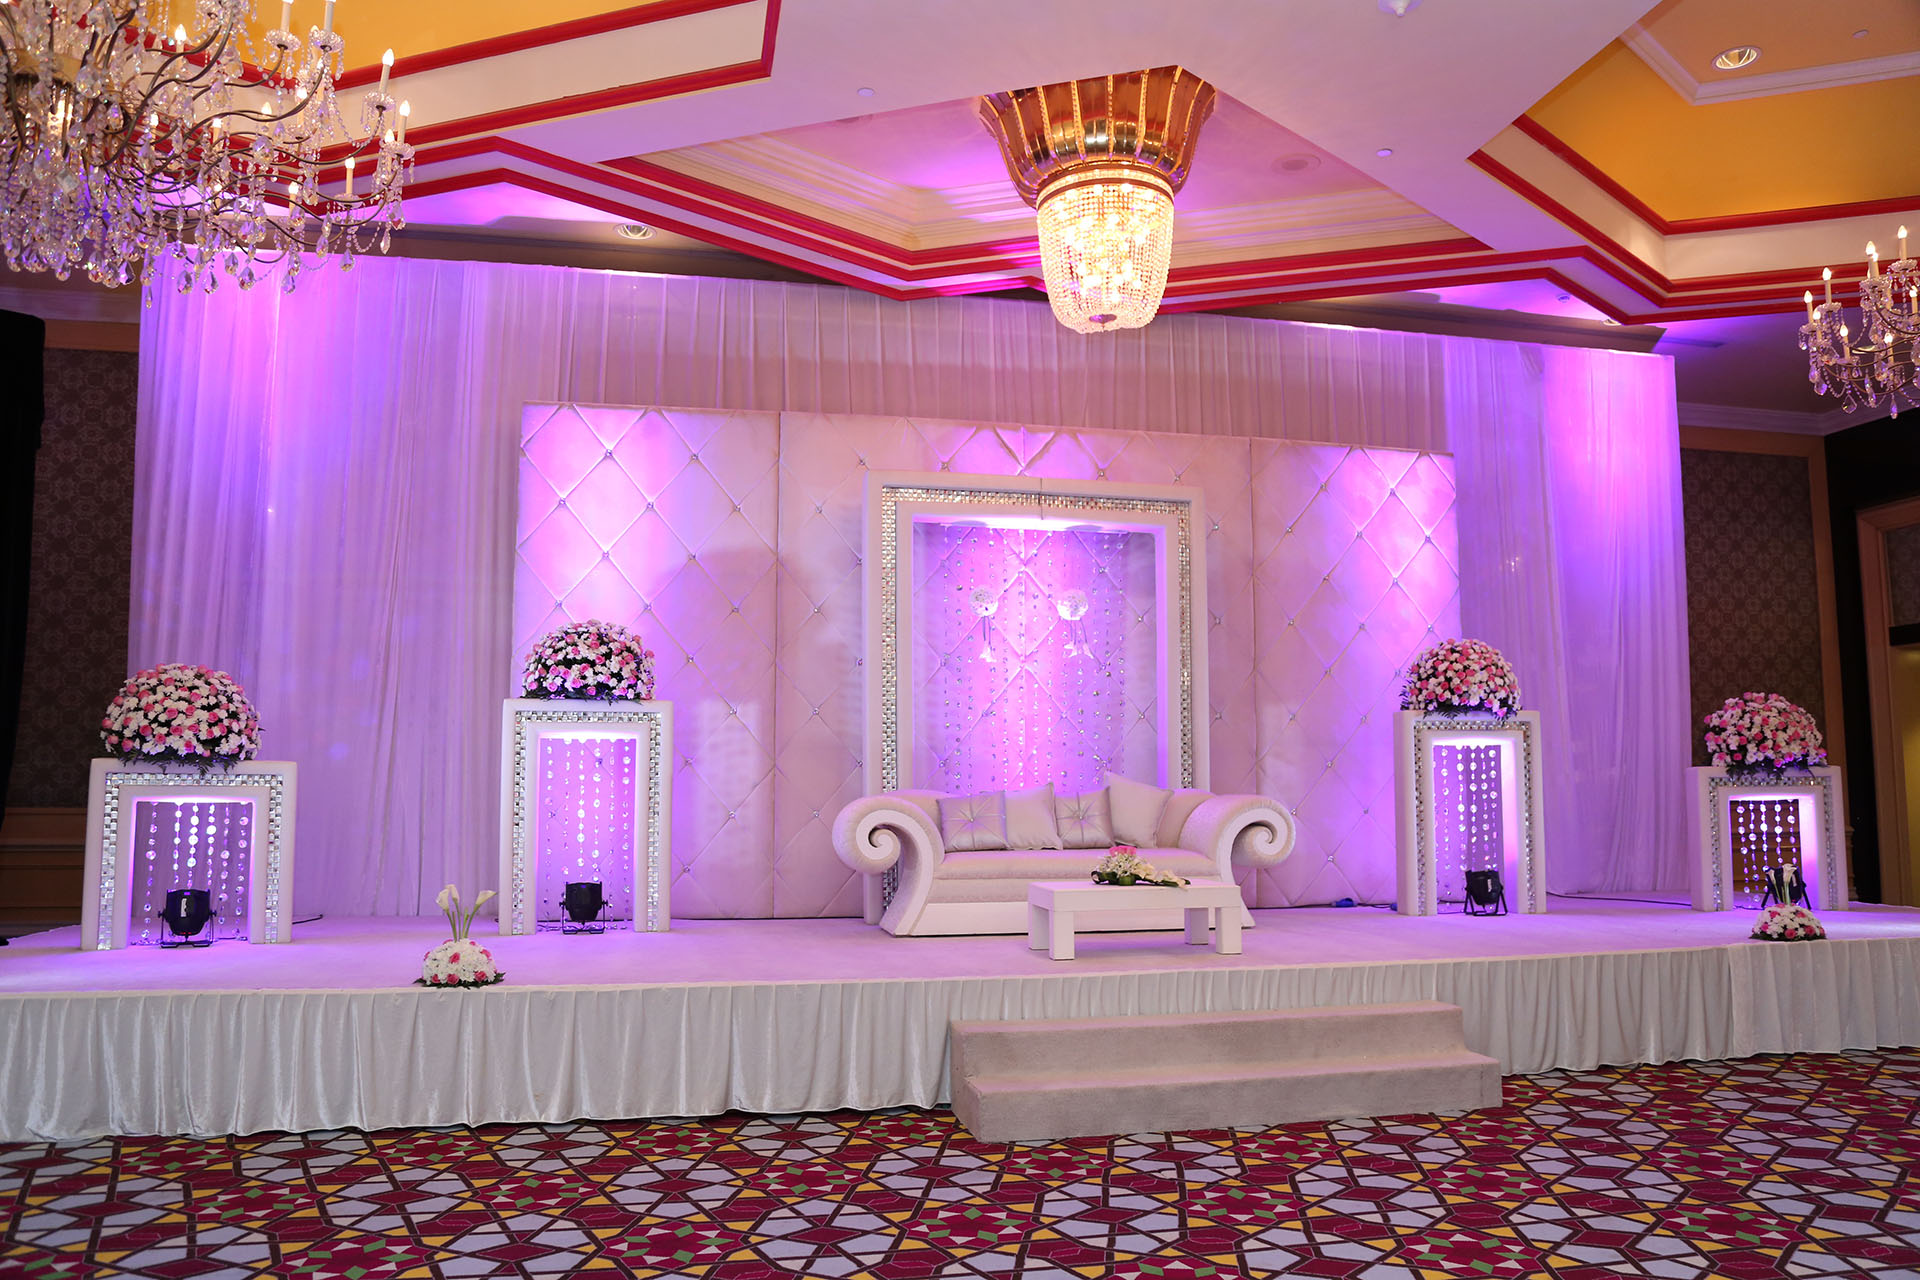 Events sibonne qatar wedding stage decorations is an impo ant aspect in the entire celebrations of marriage ceremony junglespirit Image collections